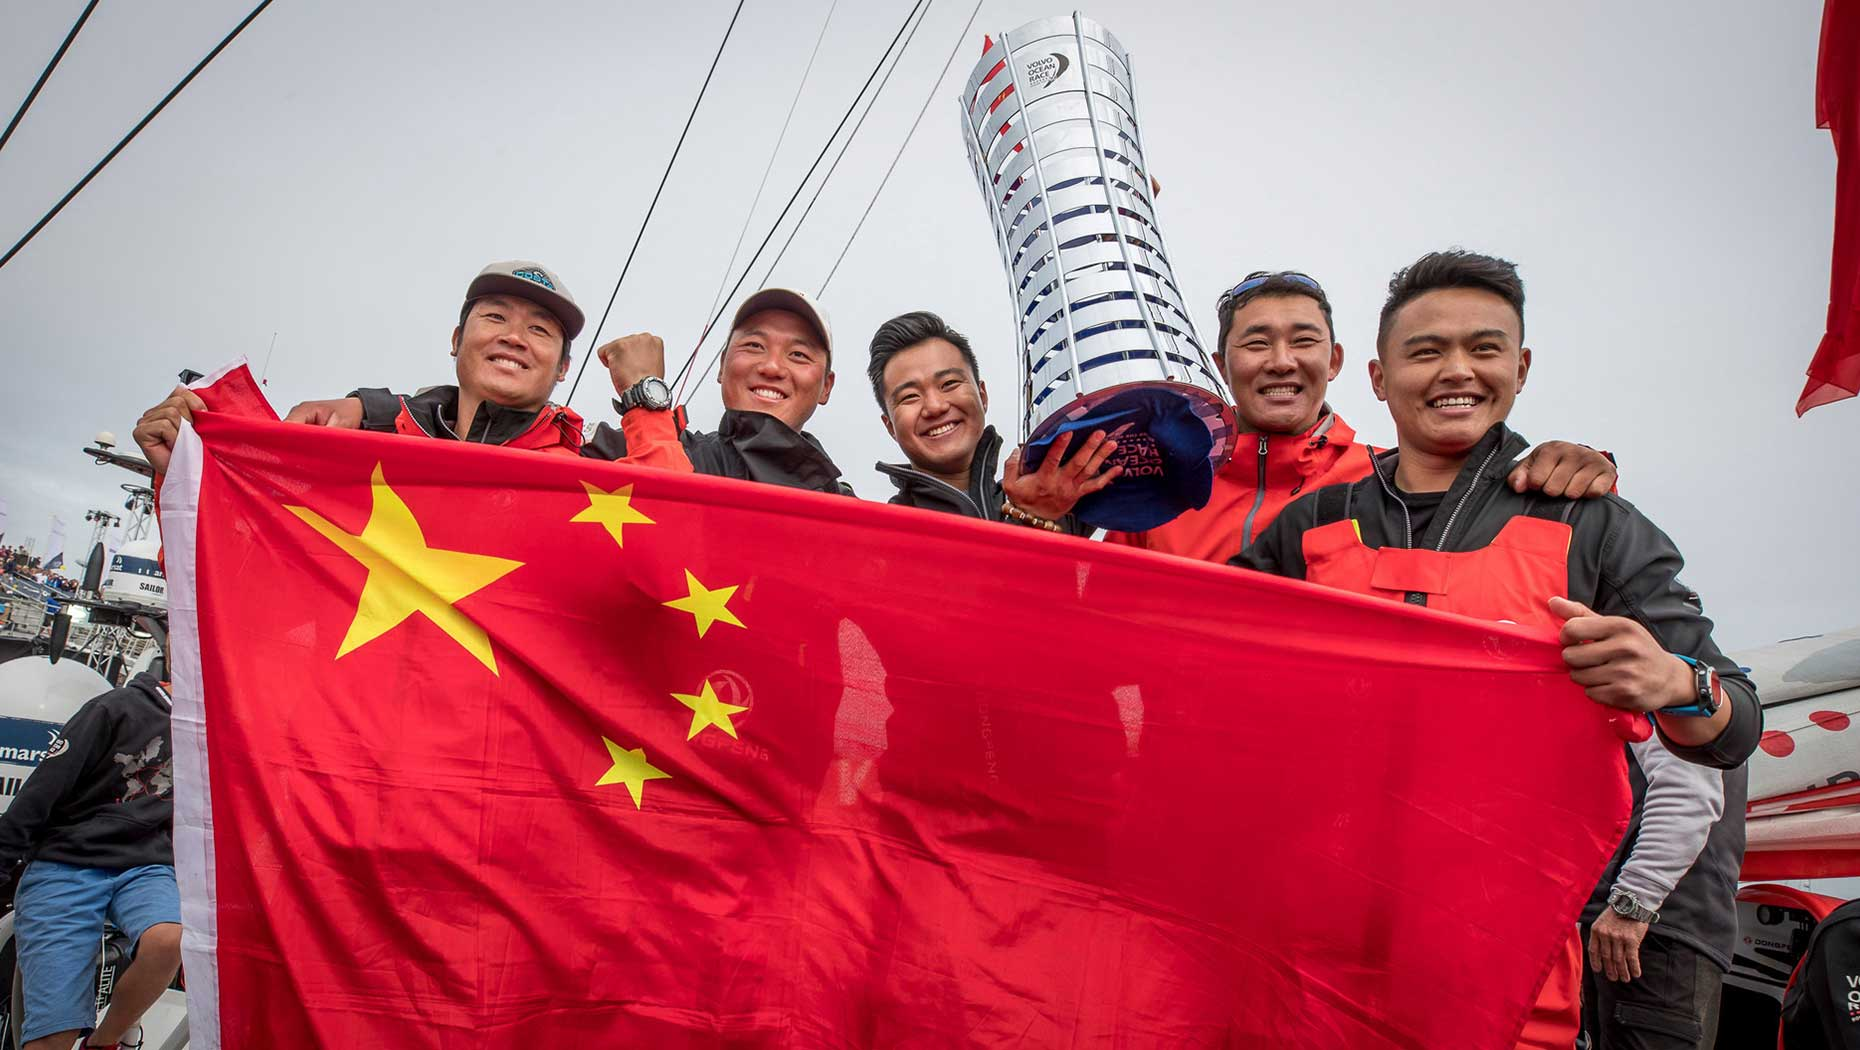 Dongfeng Race Team wins the Volvo Ocean Race